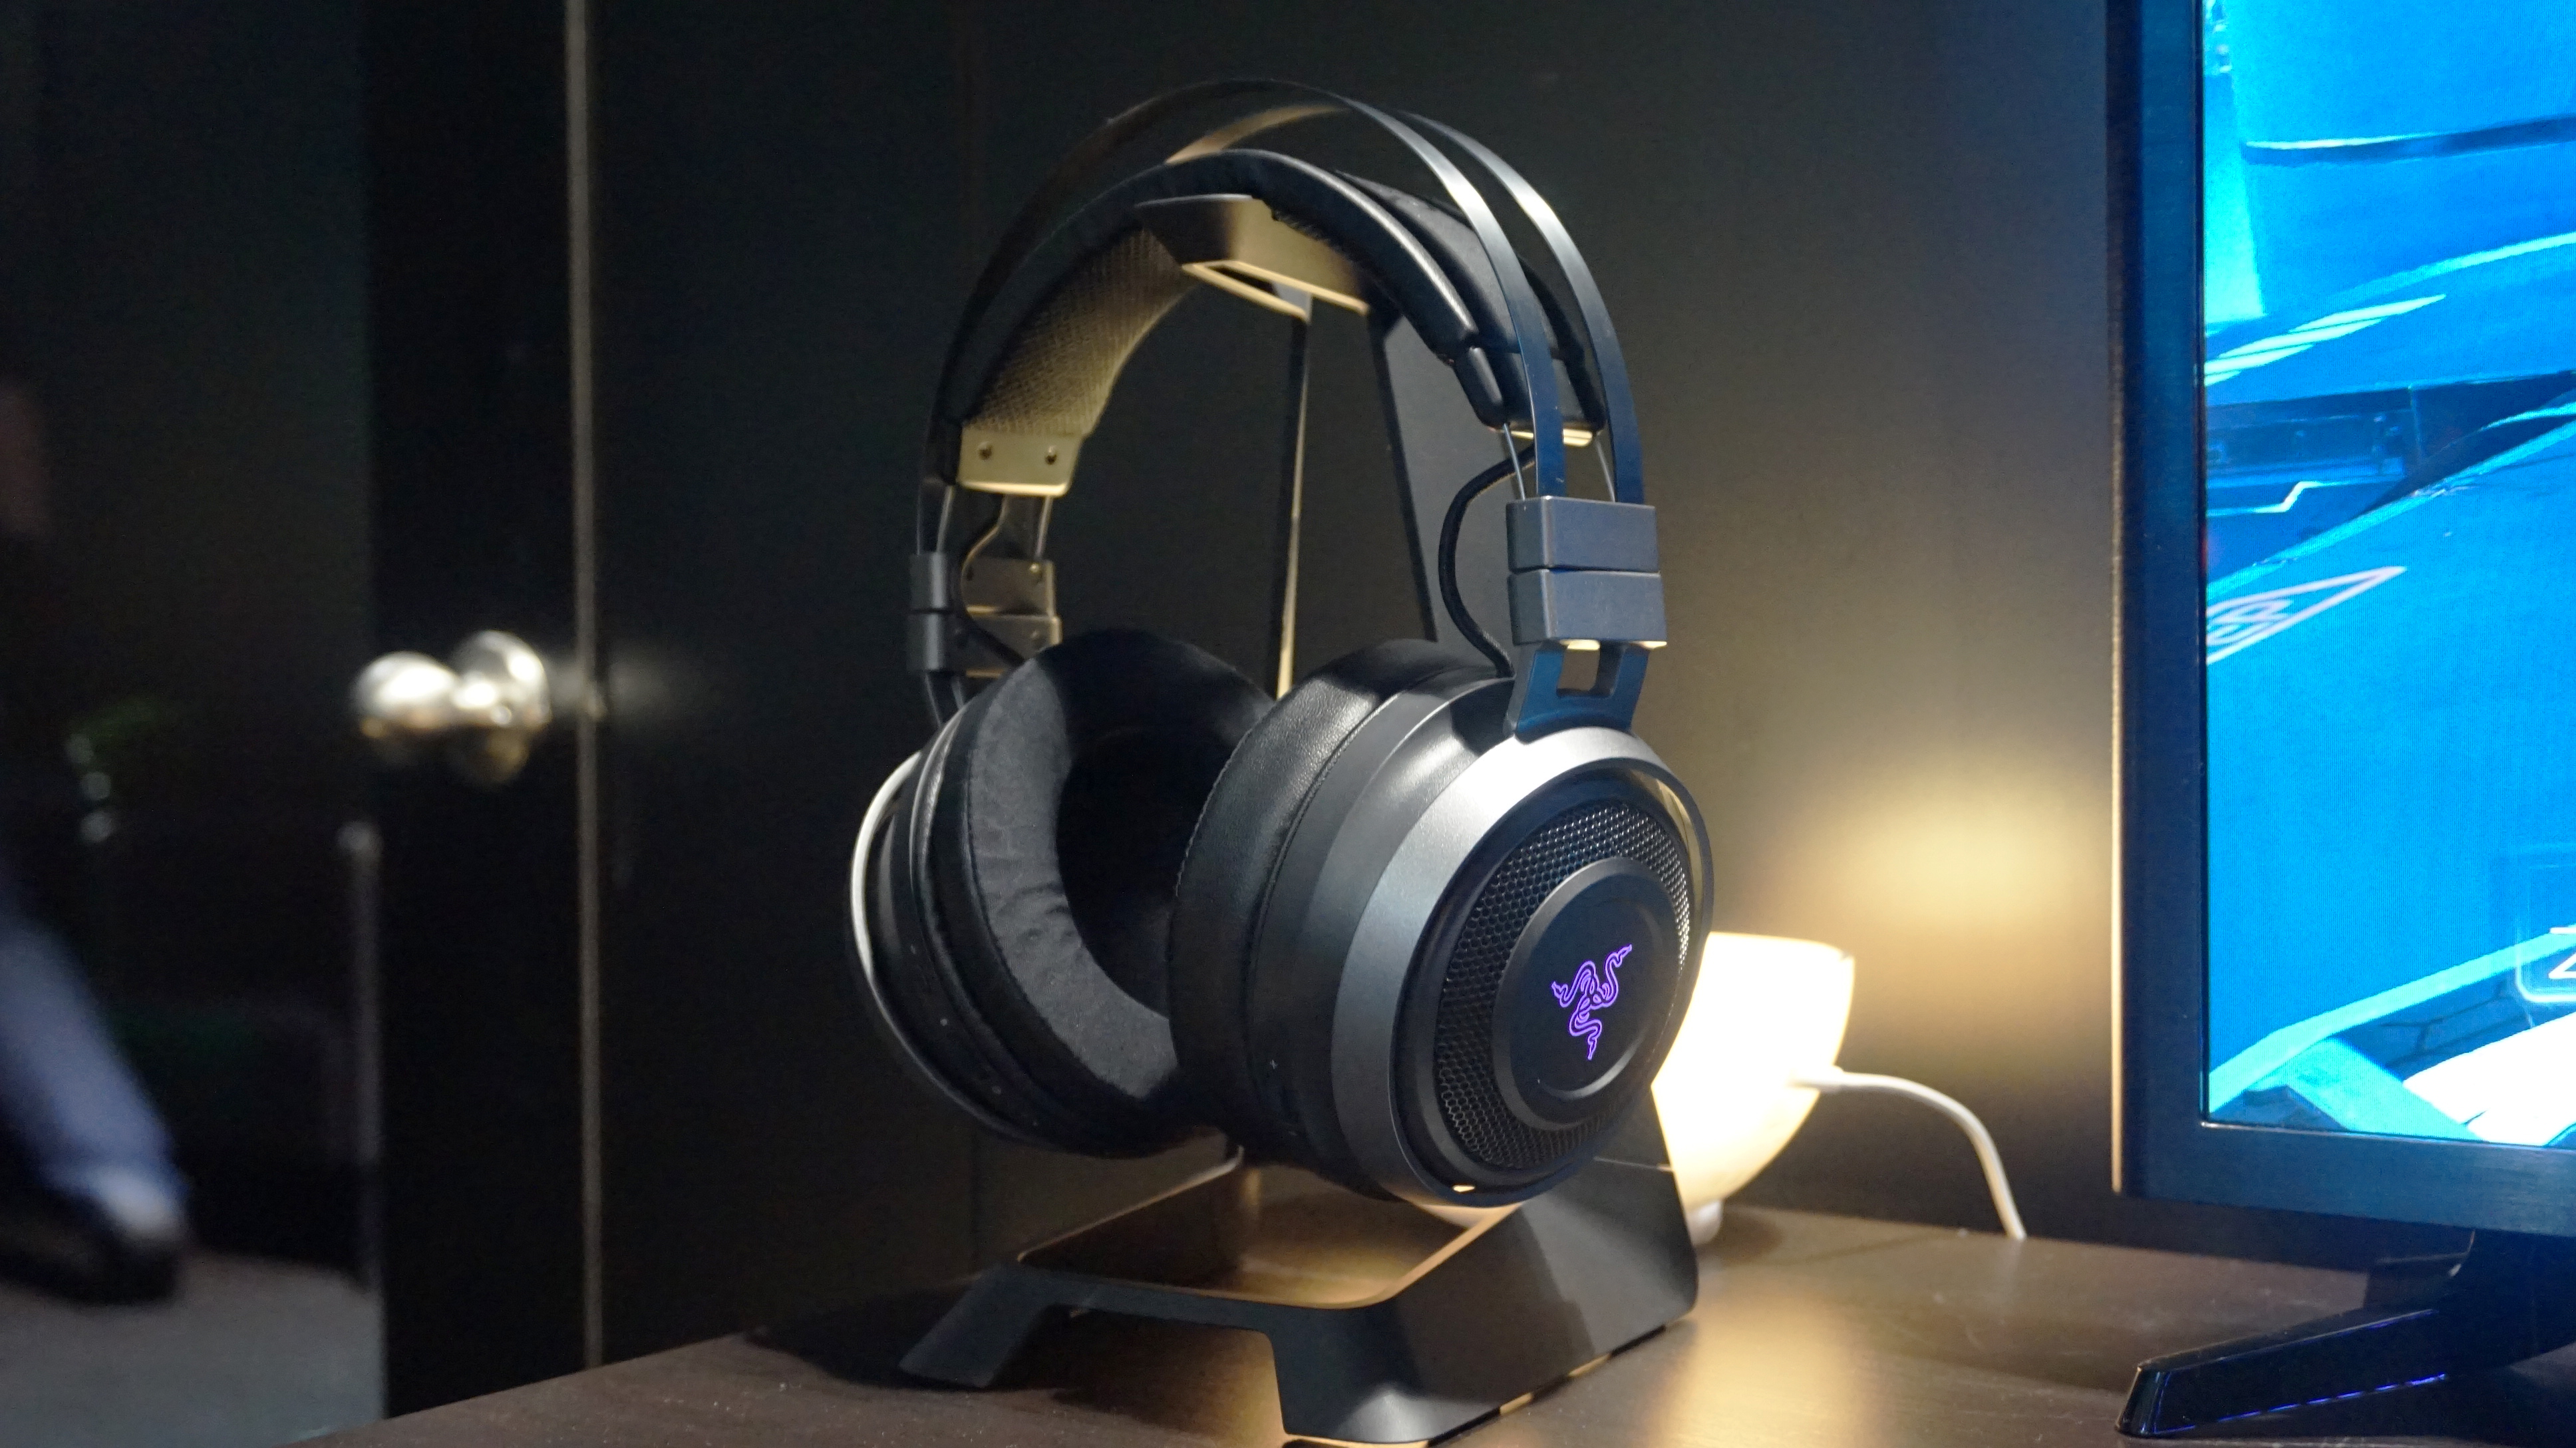 31a78d689f2 Razer's Nari Ultimate wireless headset is the only bit of HyperSense that's  an actual product right now.